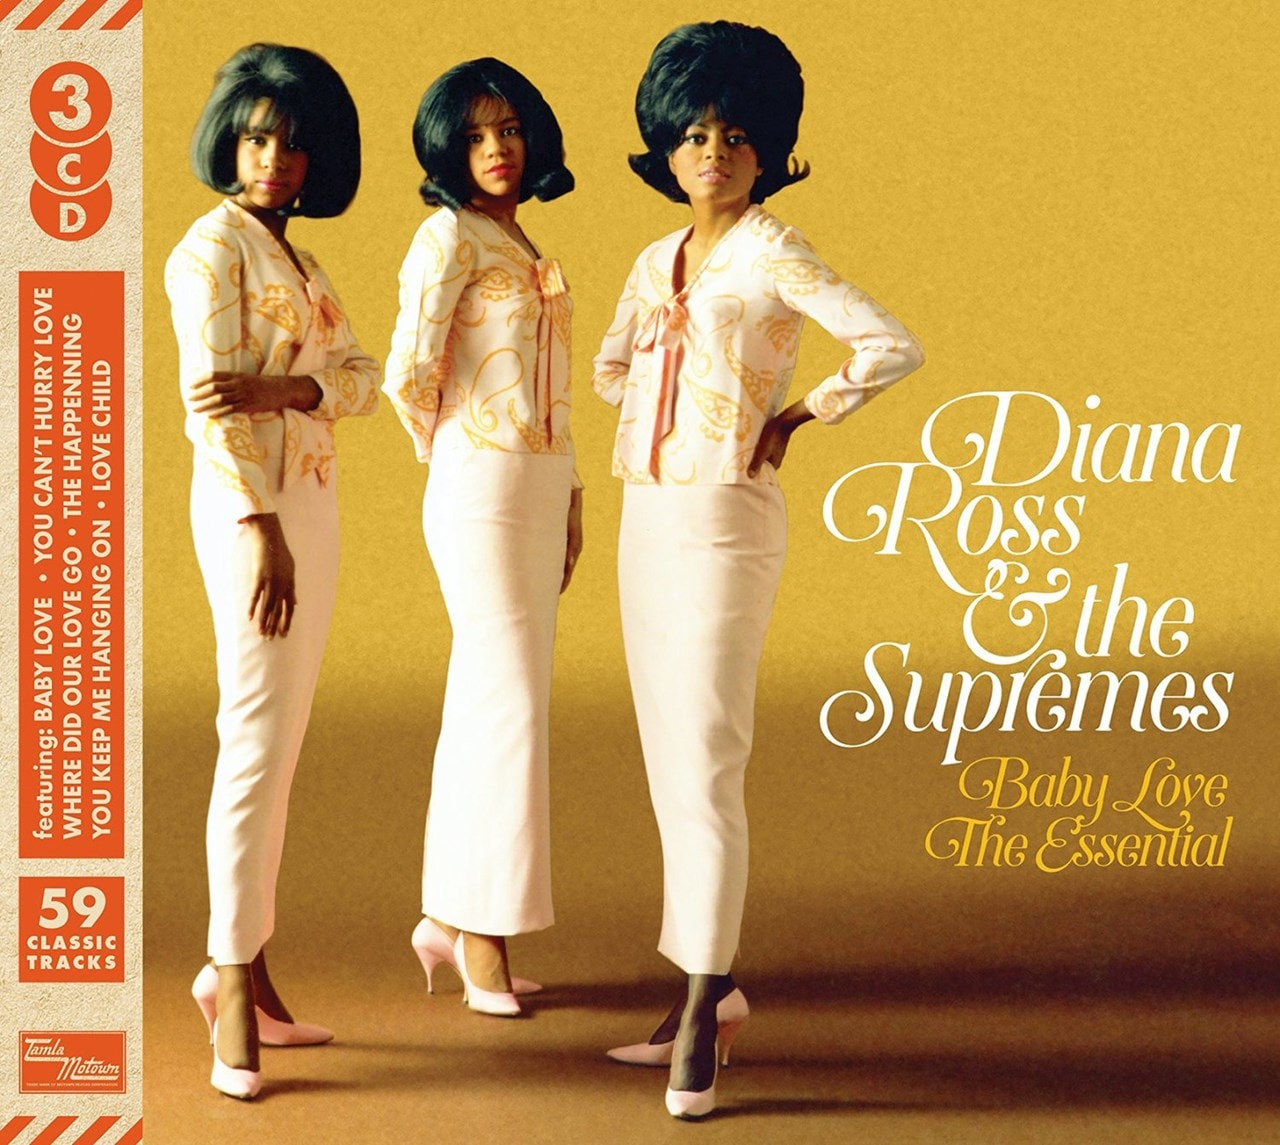 Baby Love: The Essential Diana Ross & the Supremes - 1